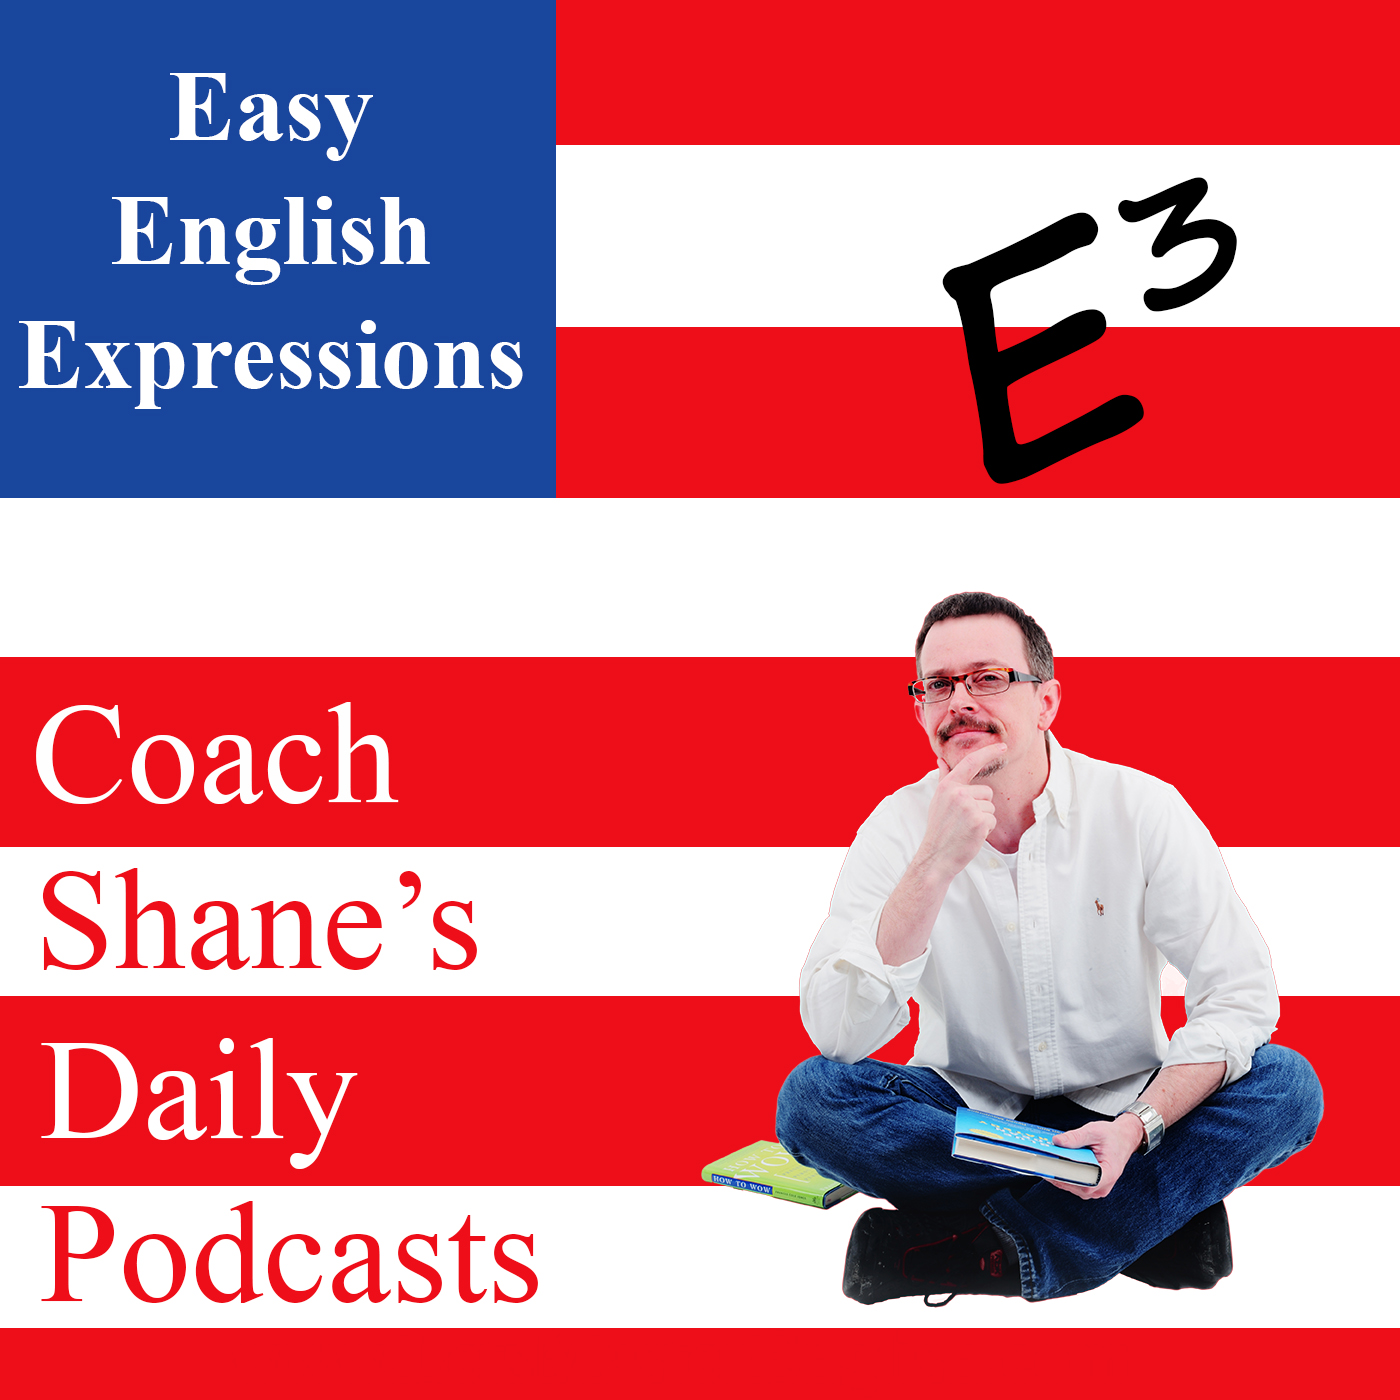 81 Daily Easy English Expression PODCAST—my diet